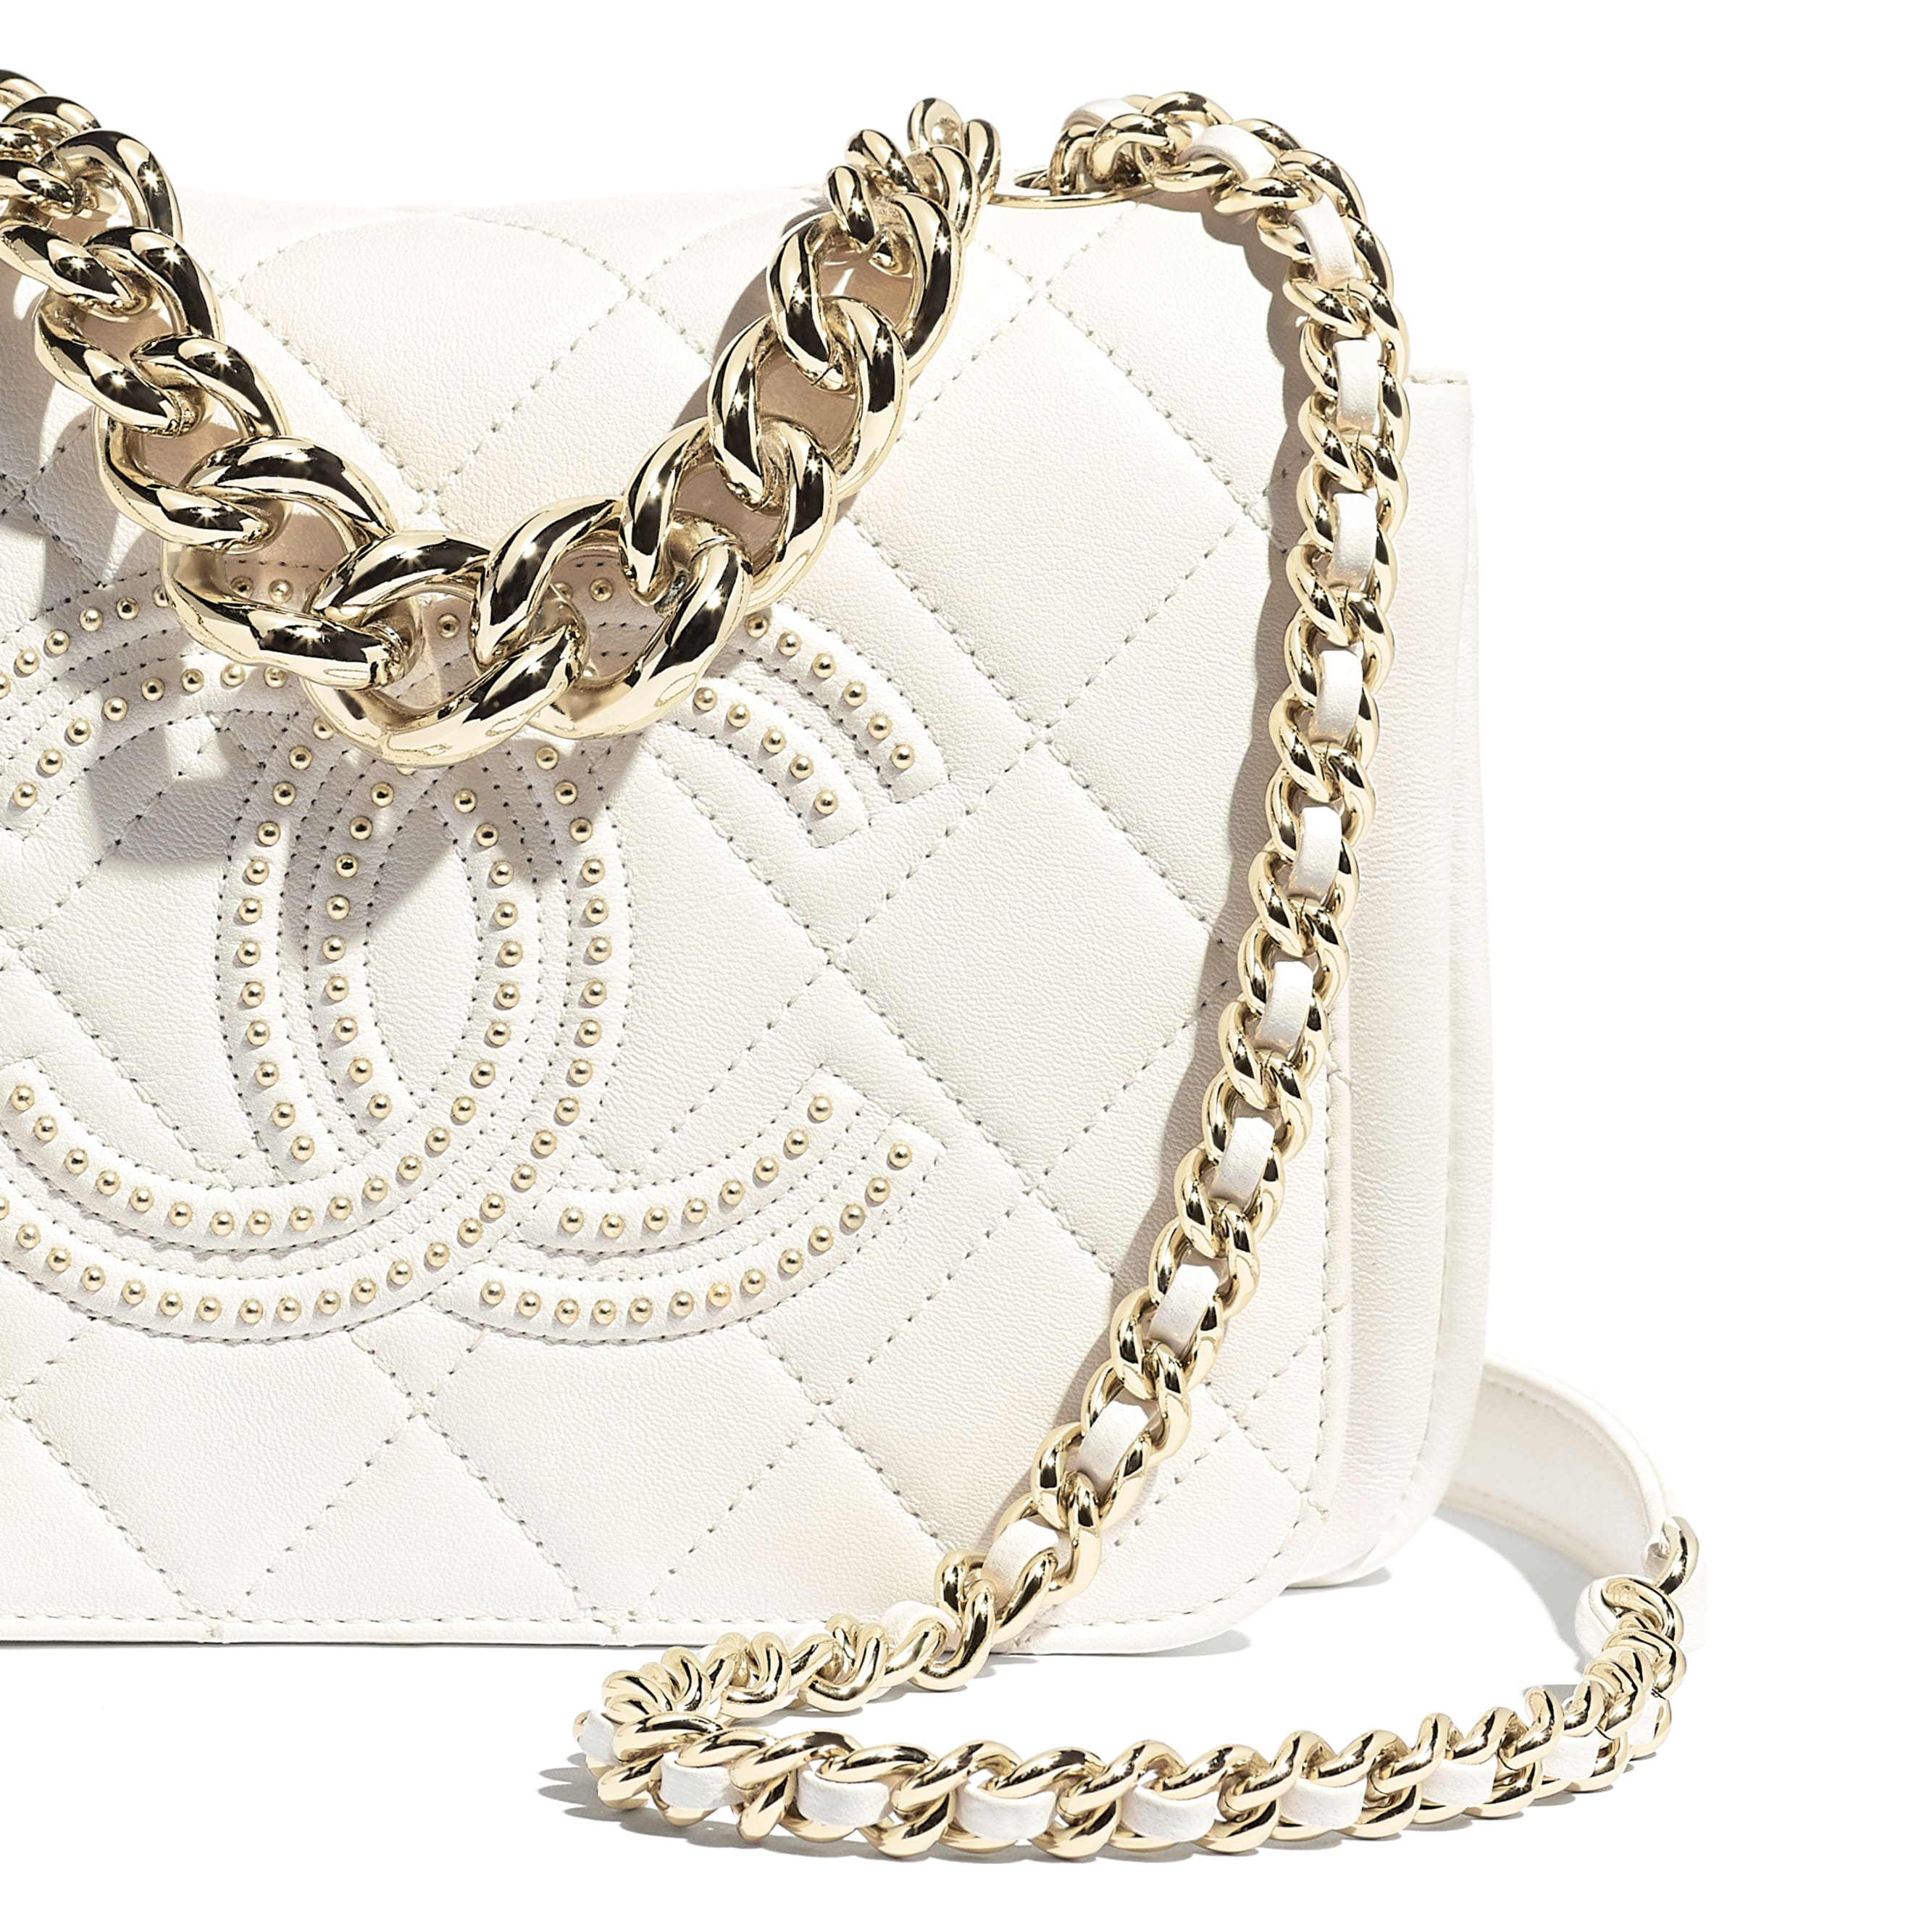 Flap Bag - White - Lambskin, Studs & Gold-Tone Metal - CHANEL - Extra view - see standard sized version